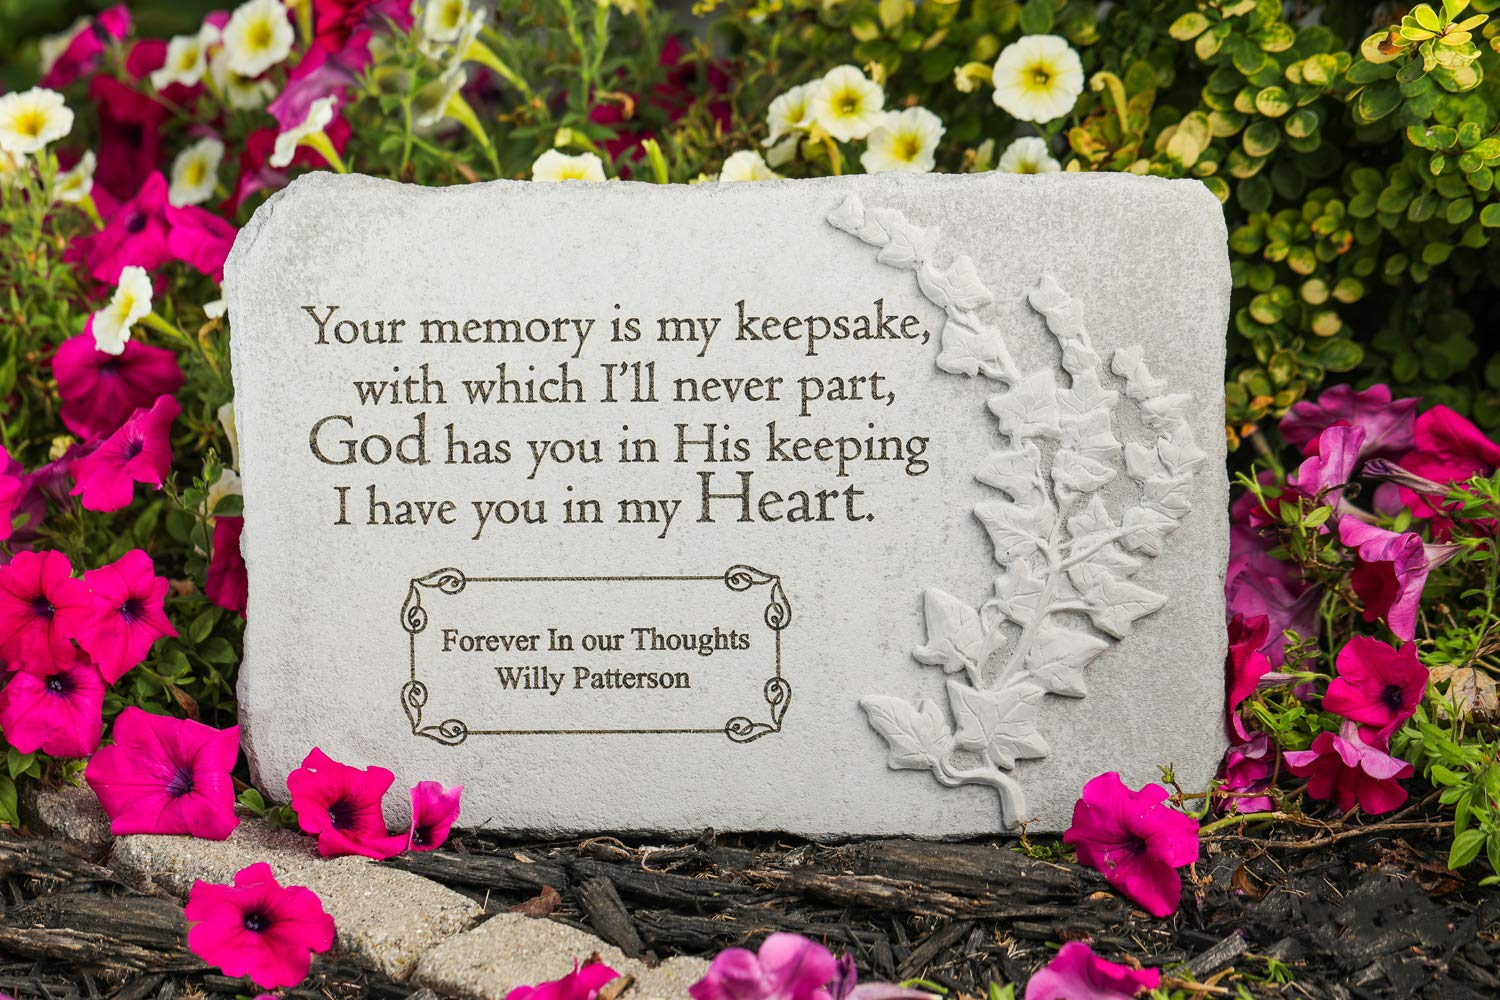 Kay Berry Inc Your Memory is My Keepsake. 15'' x 10'' Rectangle - Personalized Memorial Stone - Fused Glass Stone by Kay Berry Inc (Image #1)